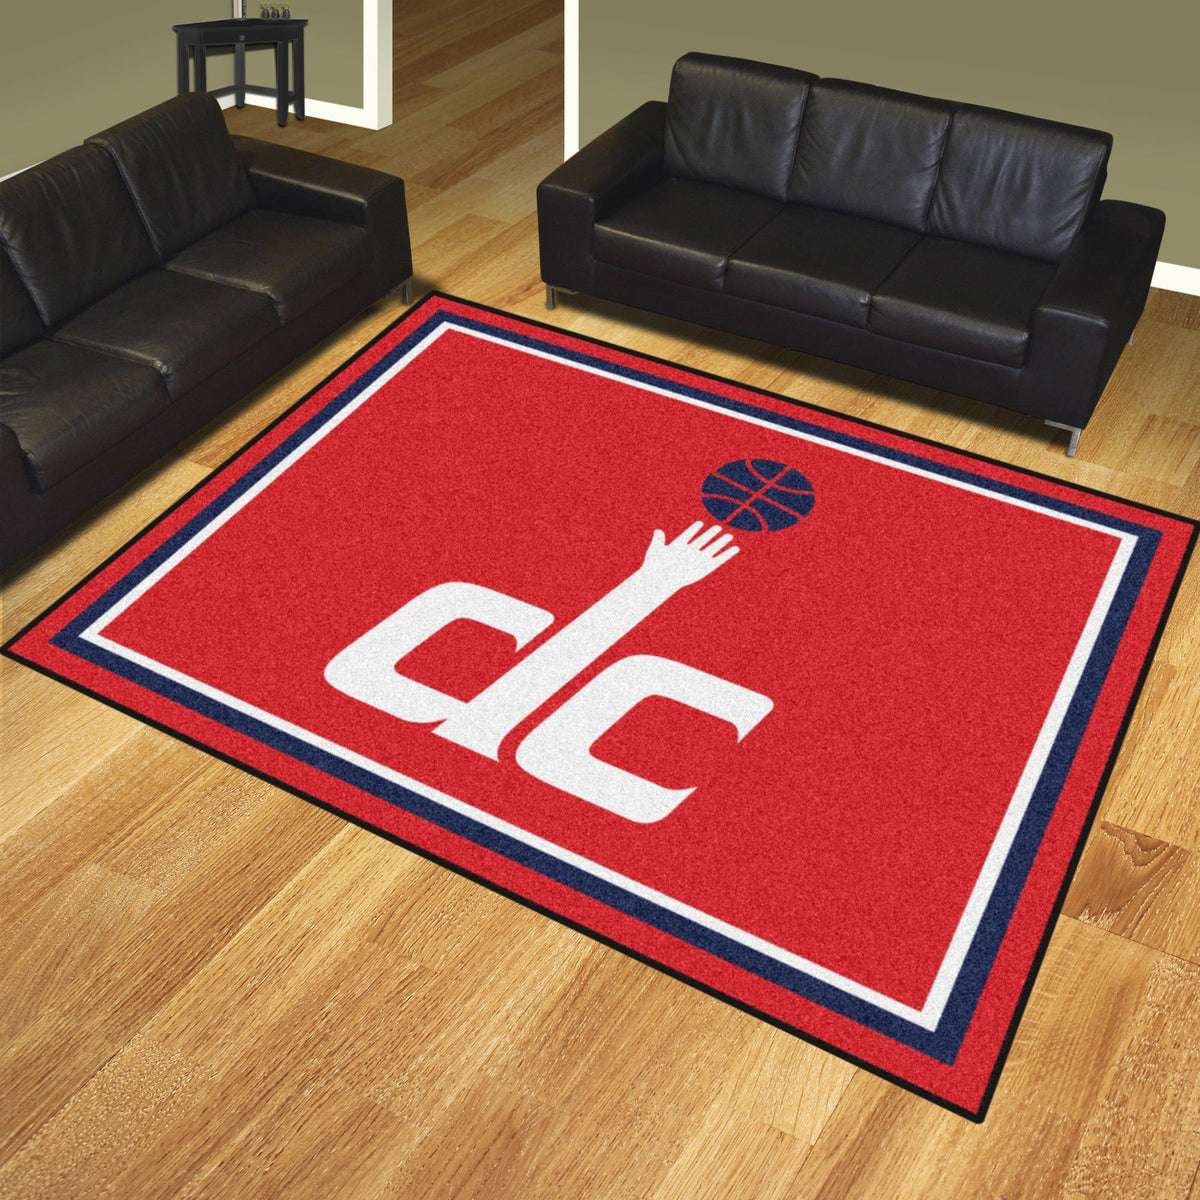 NBA - 8' x 10' Rug NBA Mats, Plush Rugs, 8x10 Rug, NBA, Home Fan Mats Washington Wizards